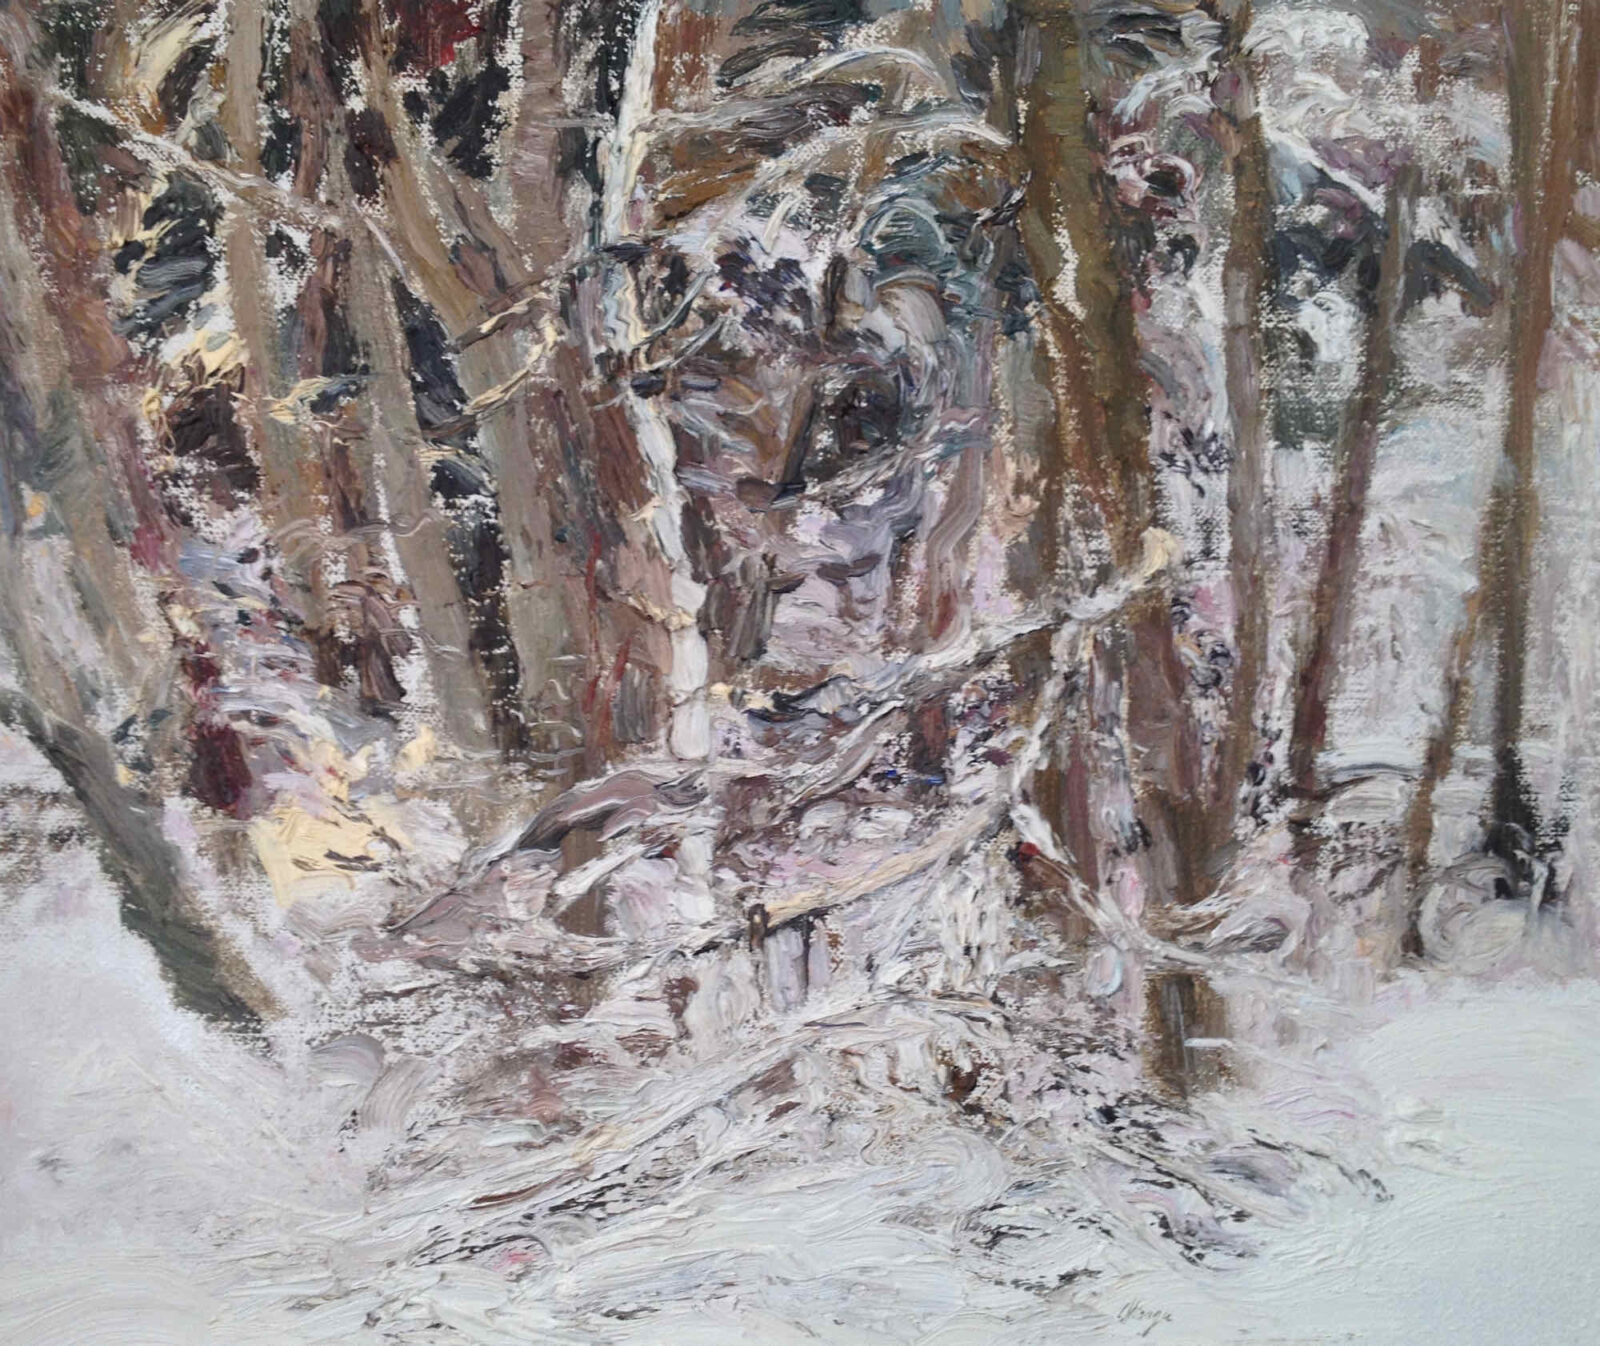 Liza Visagie - Winter Woods. Oil on Linen 9 x 11 inches